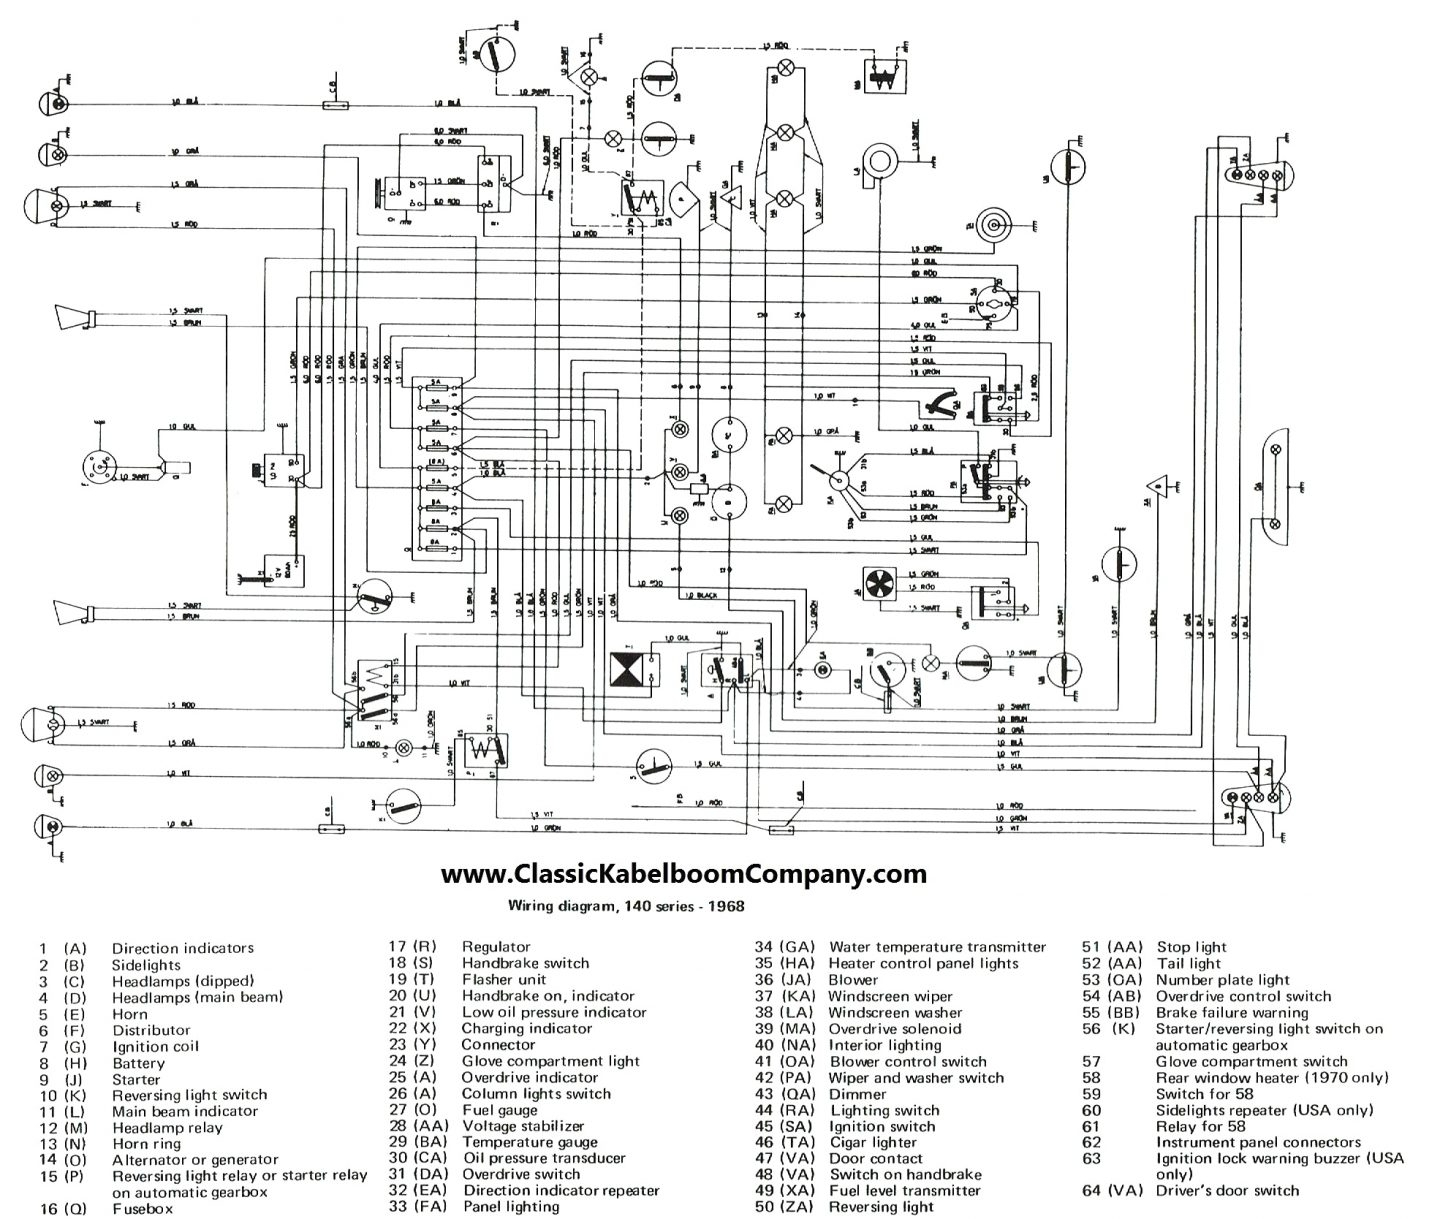 1995 ford bronco wiring diagram